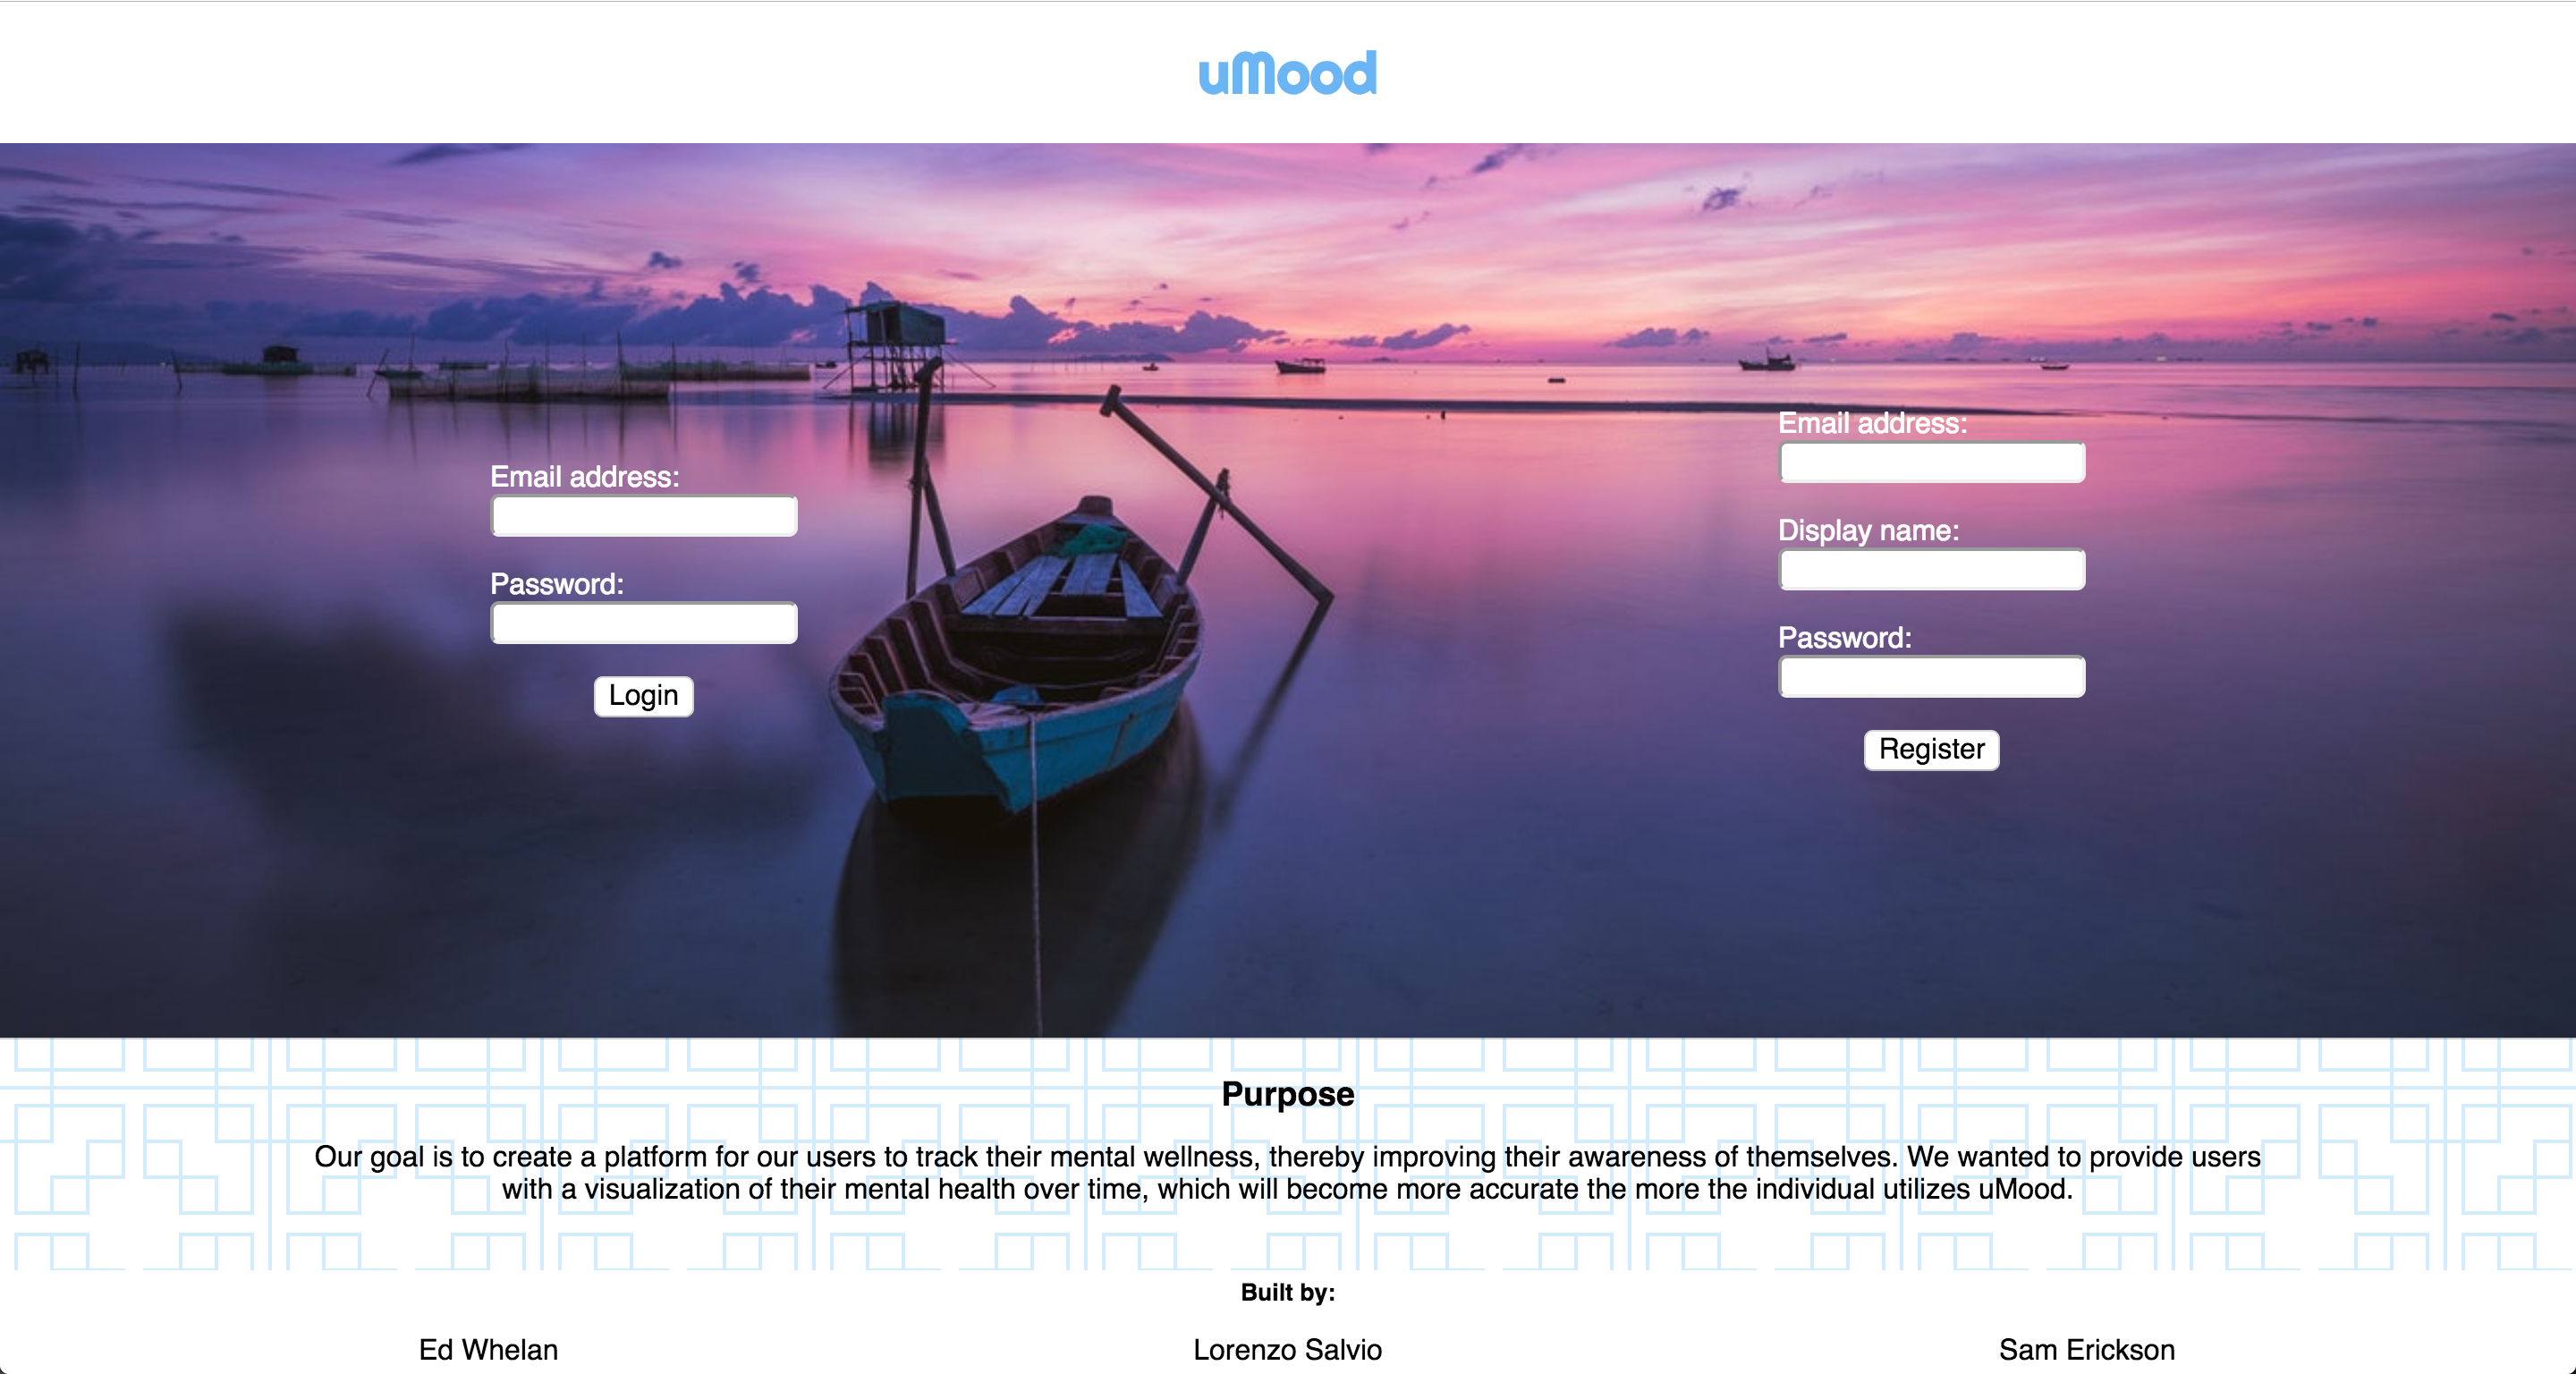 screen shot of u-mood.com landing page